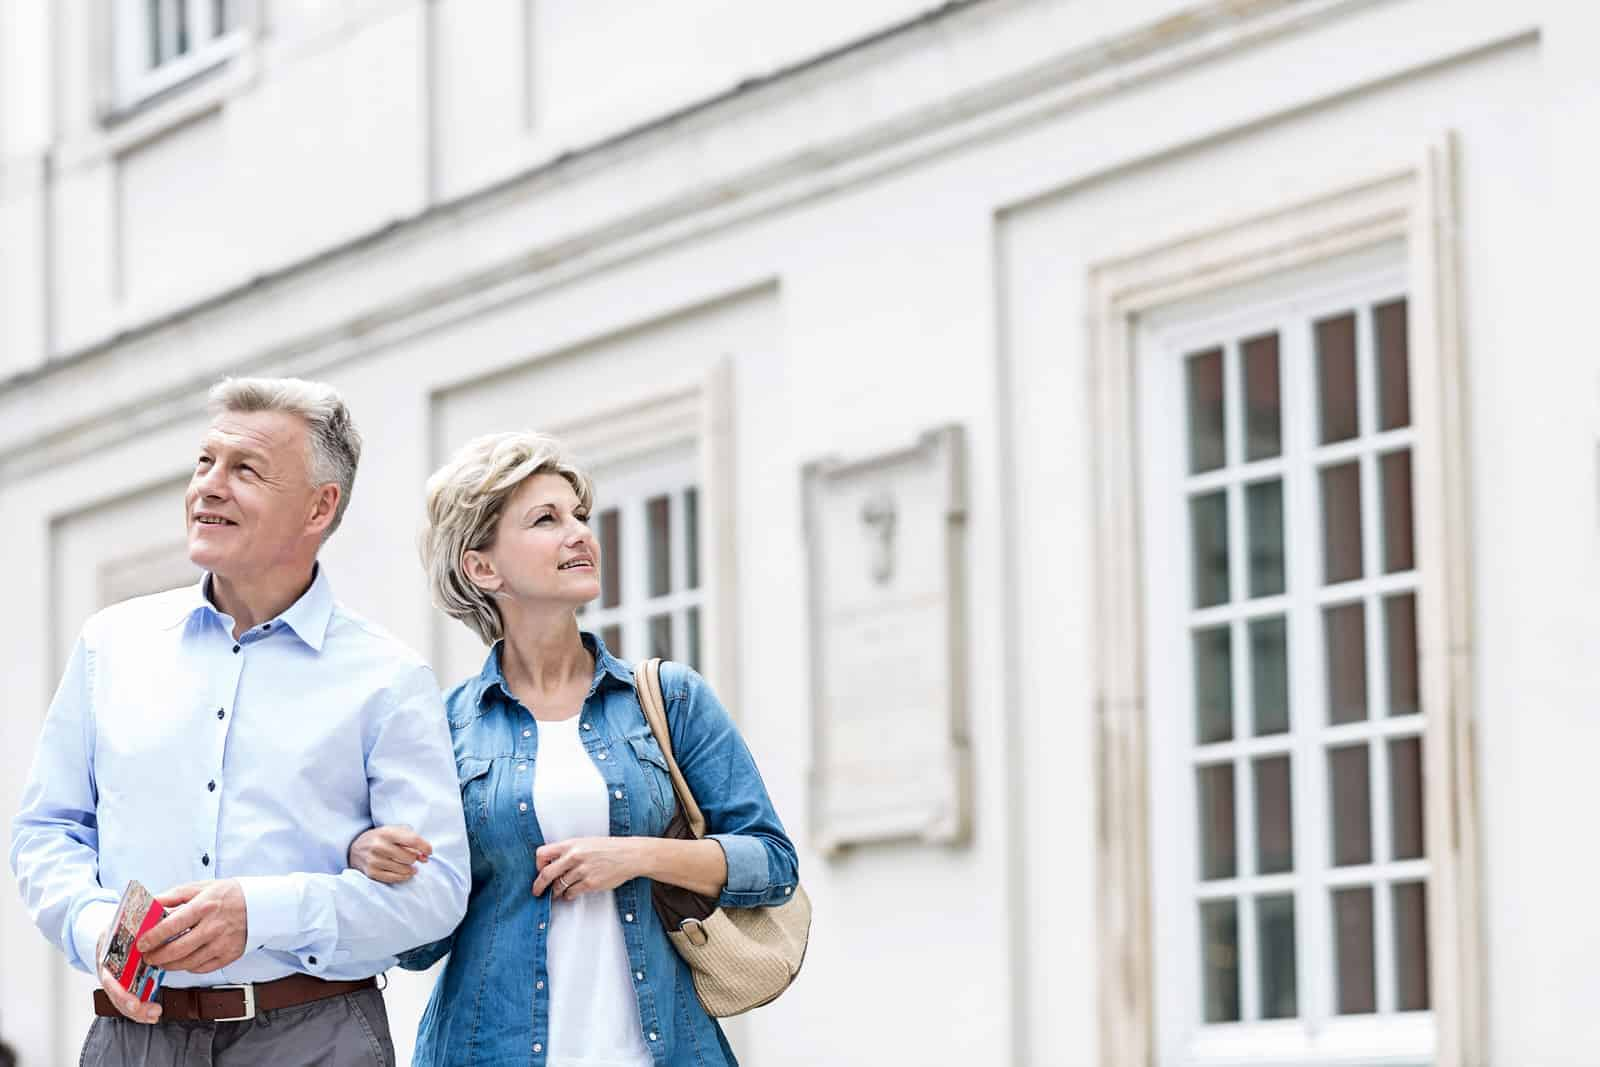 What is my ideal retirement age?